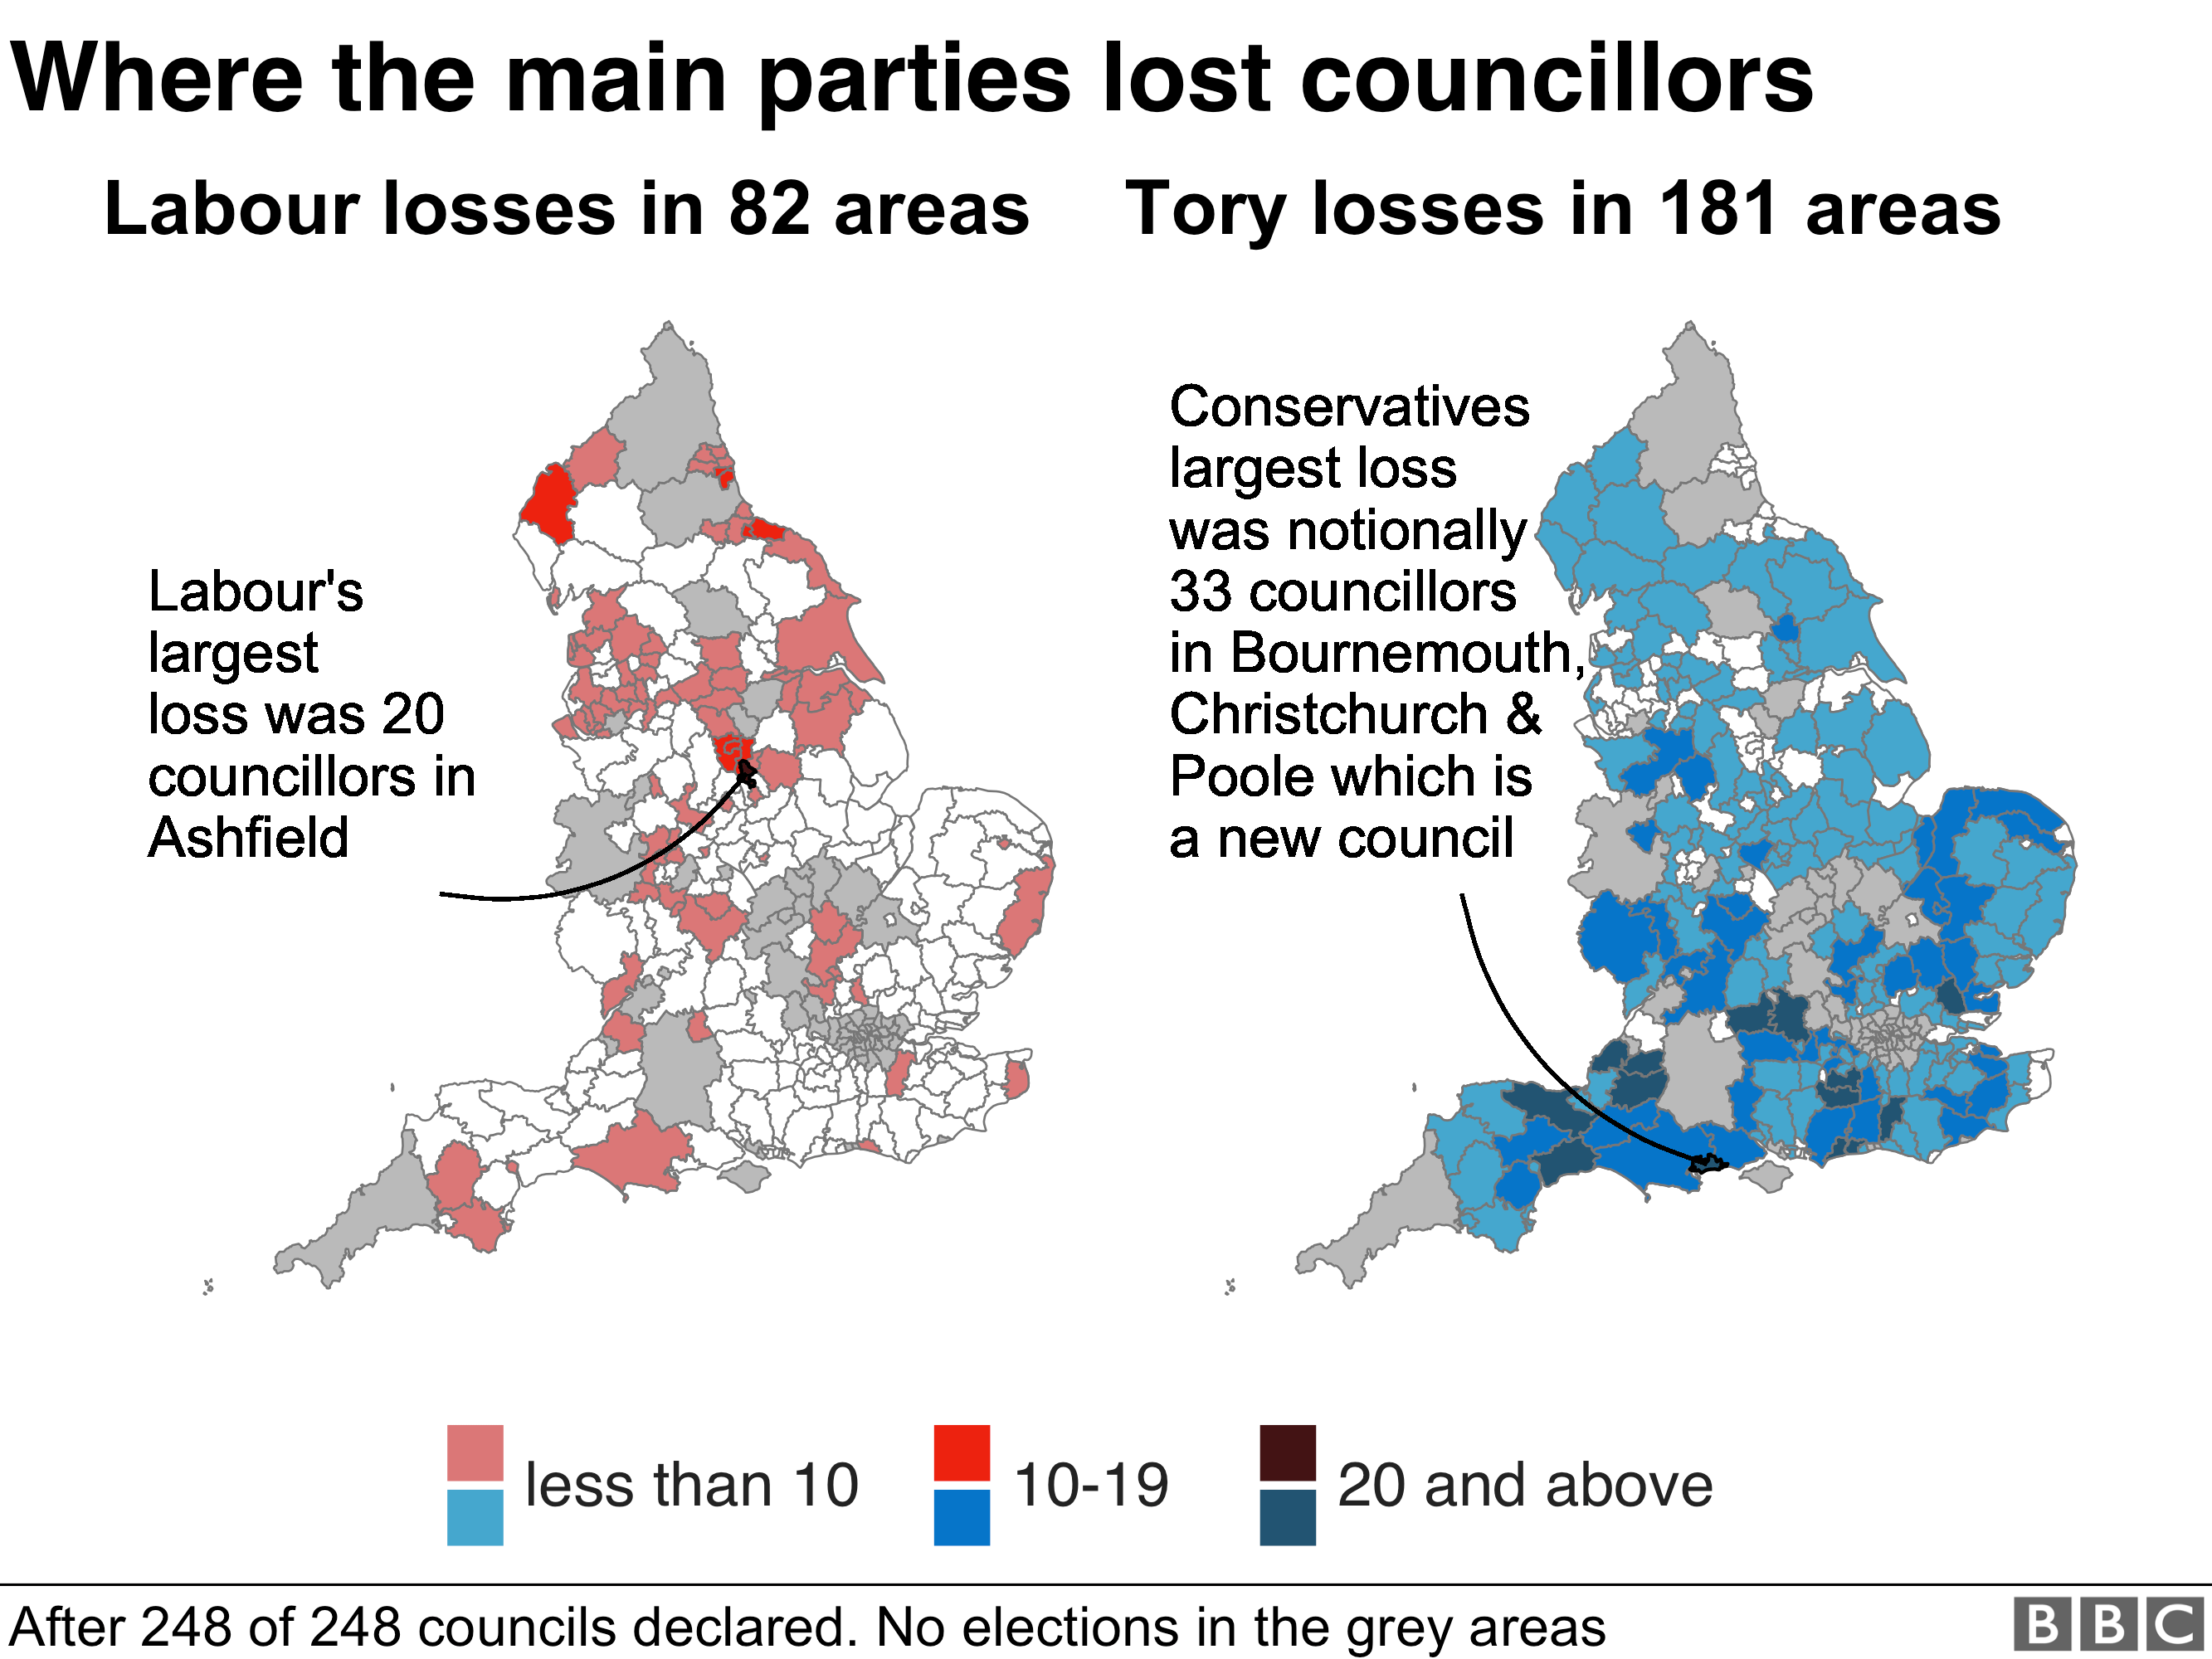 Labour suffered more losses in the north, while the tories did worse in the south